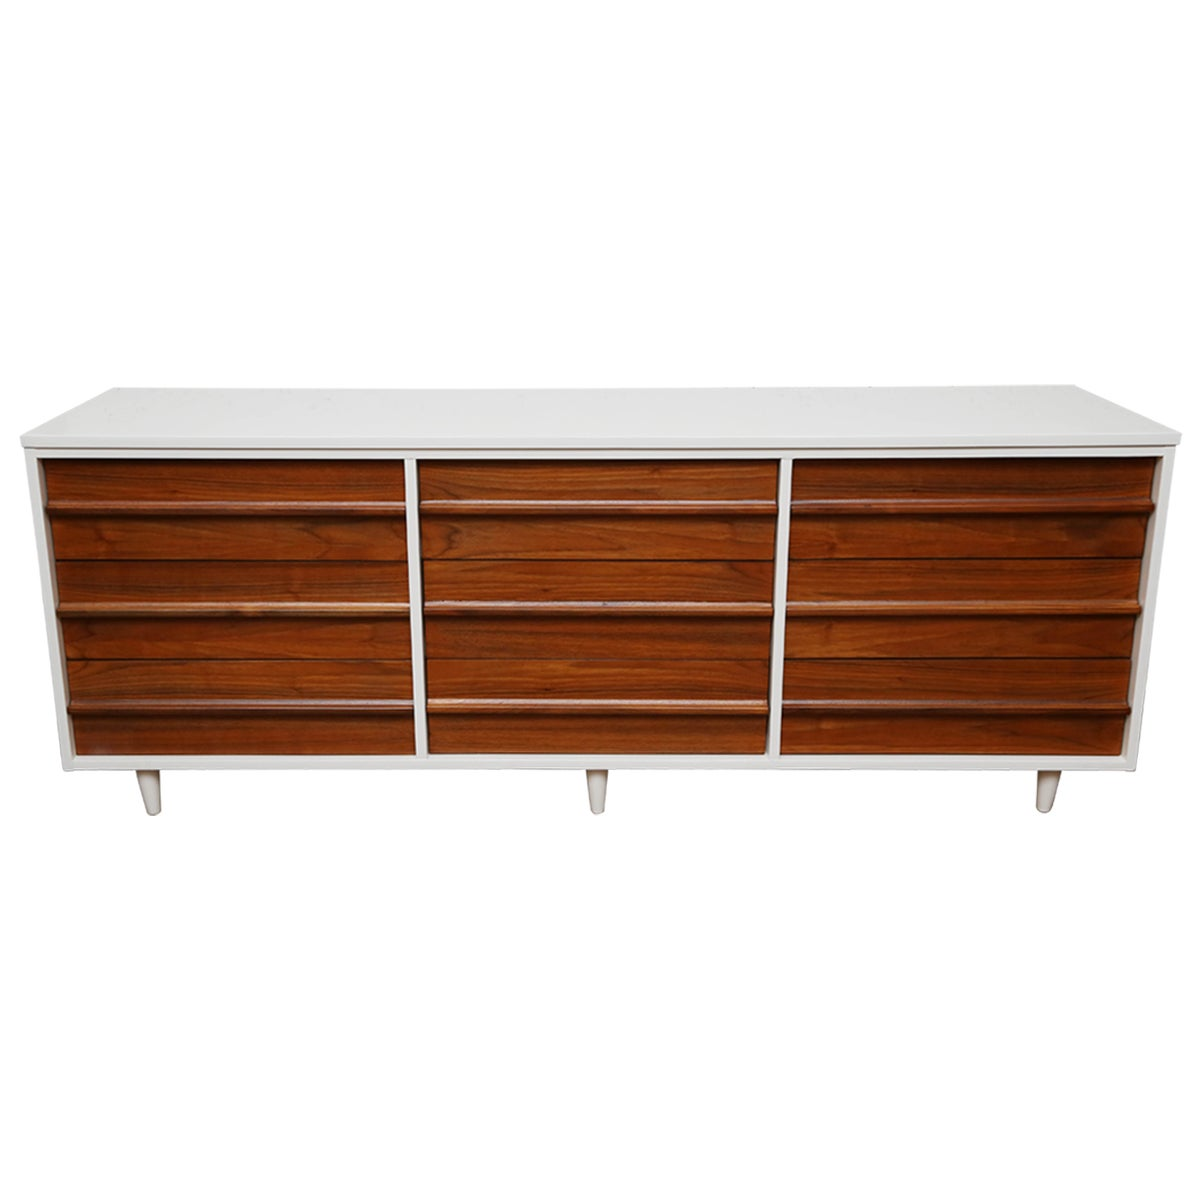 Vic Art Credenza in Natural and White Lacquer, 1960s, USA